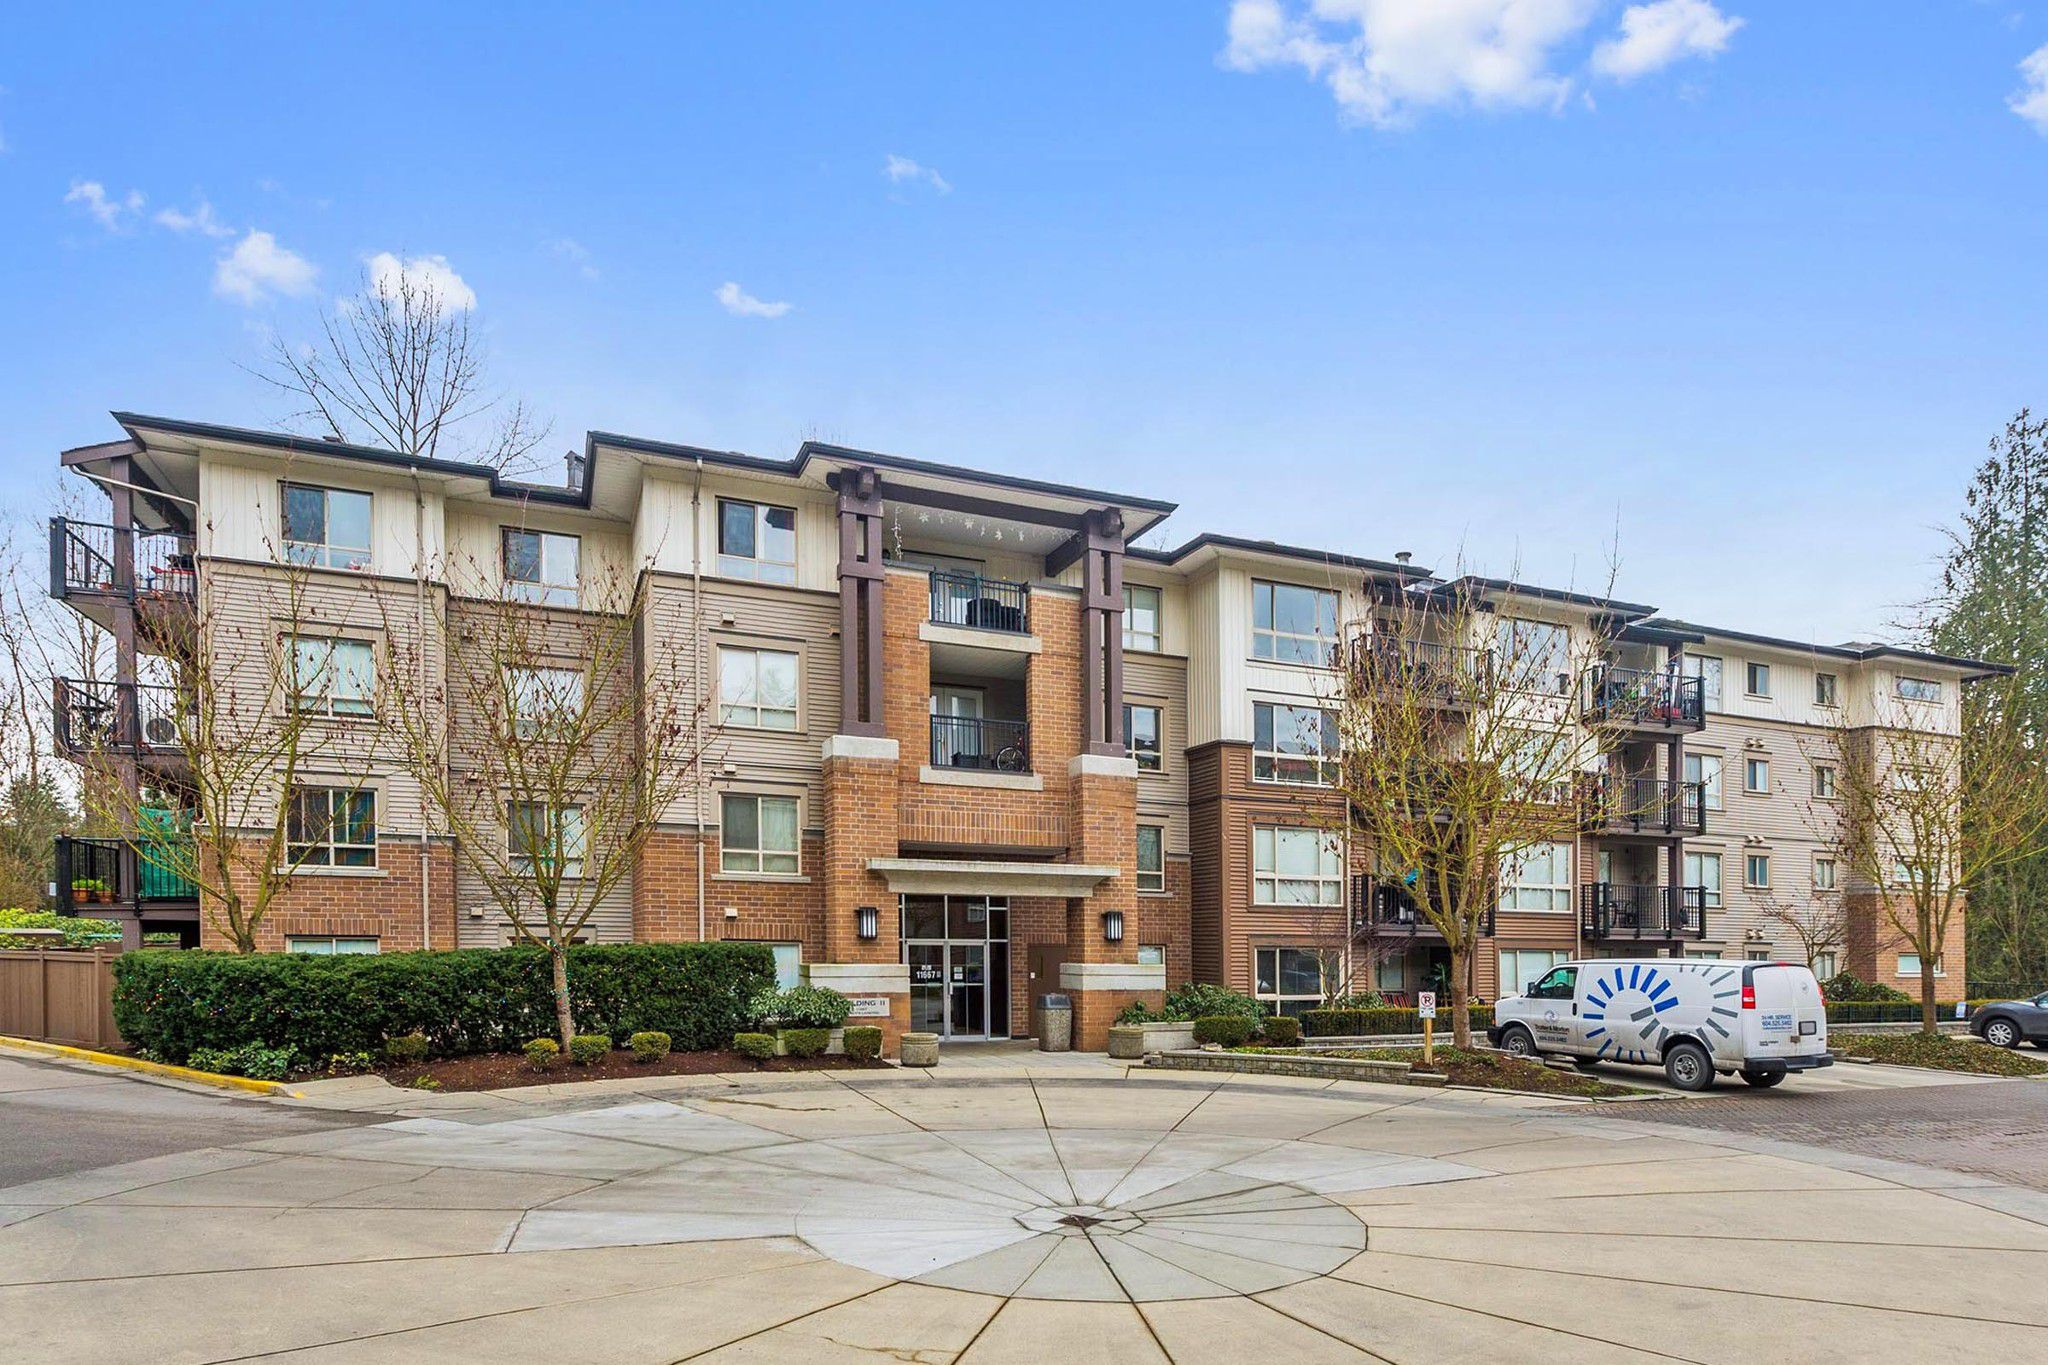 """Main Photo: 206 11667 HANEY Bypass in Maple Ridge: West Central Condo for sale in """"HANEY'S LANDING"""" : MLS®# R2231665"""